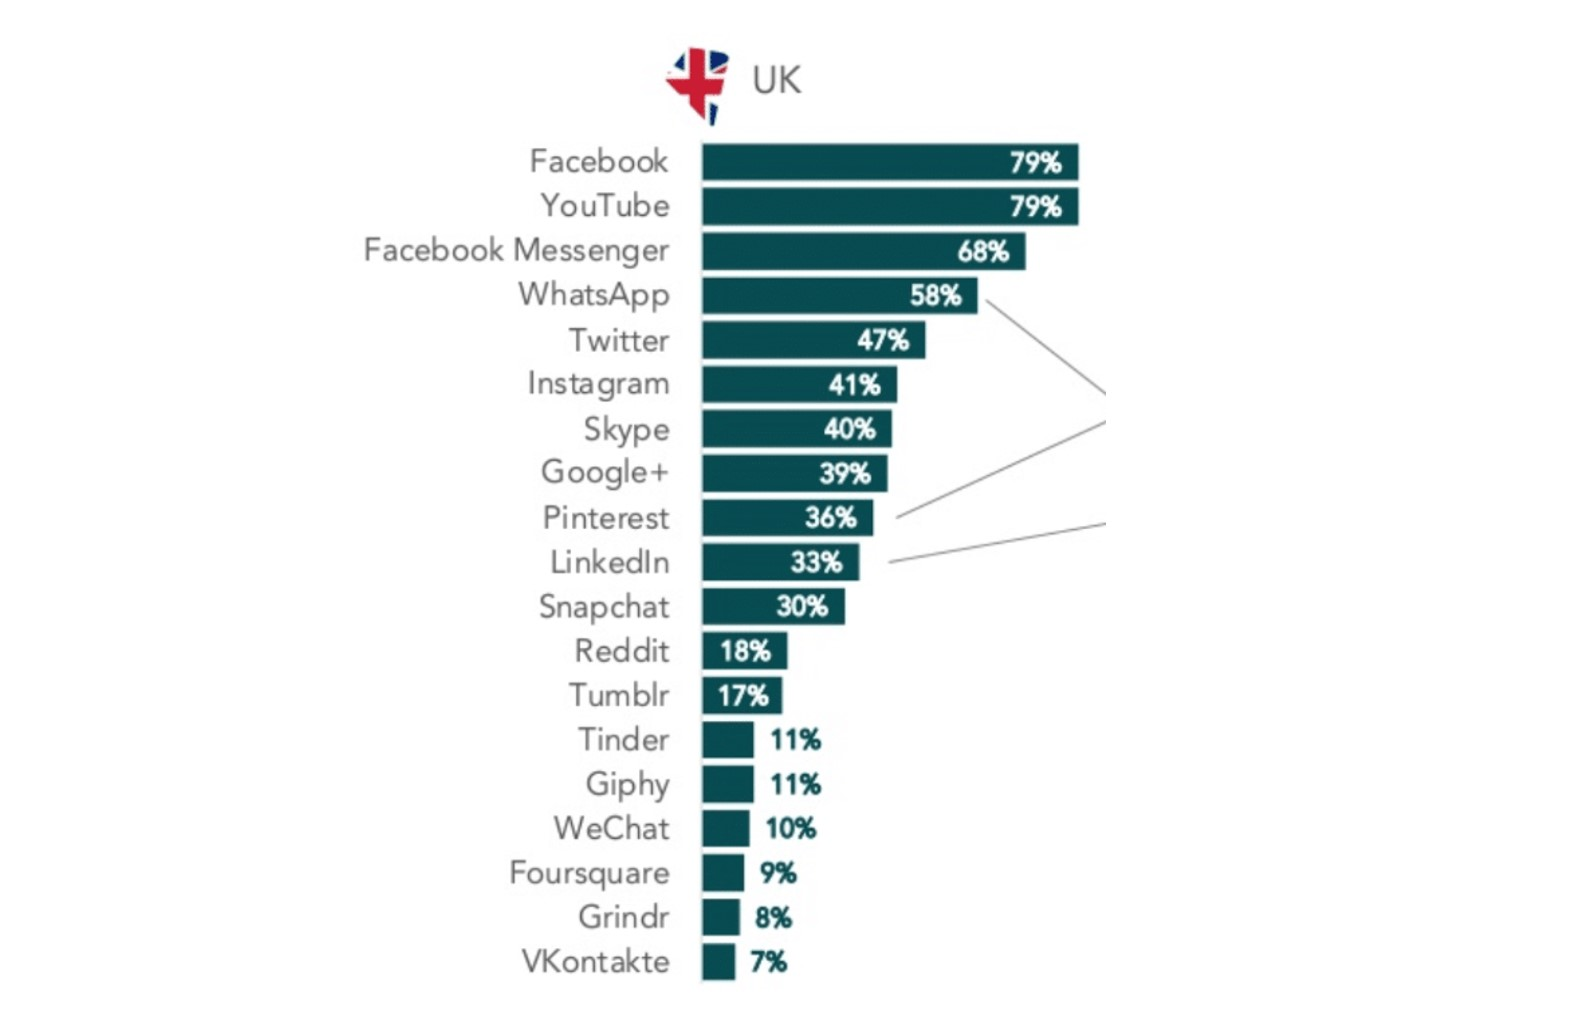 social media subscriptions in the UK